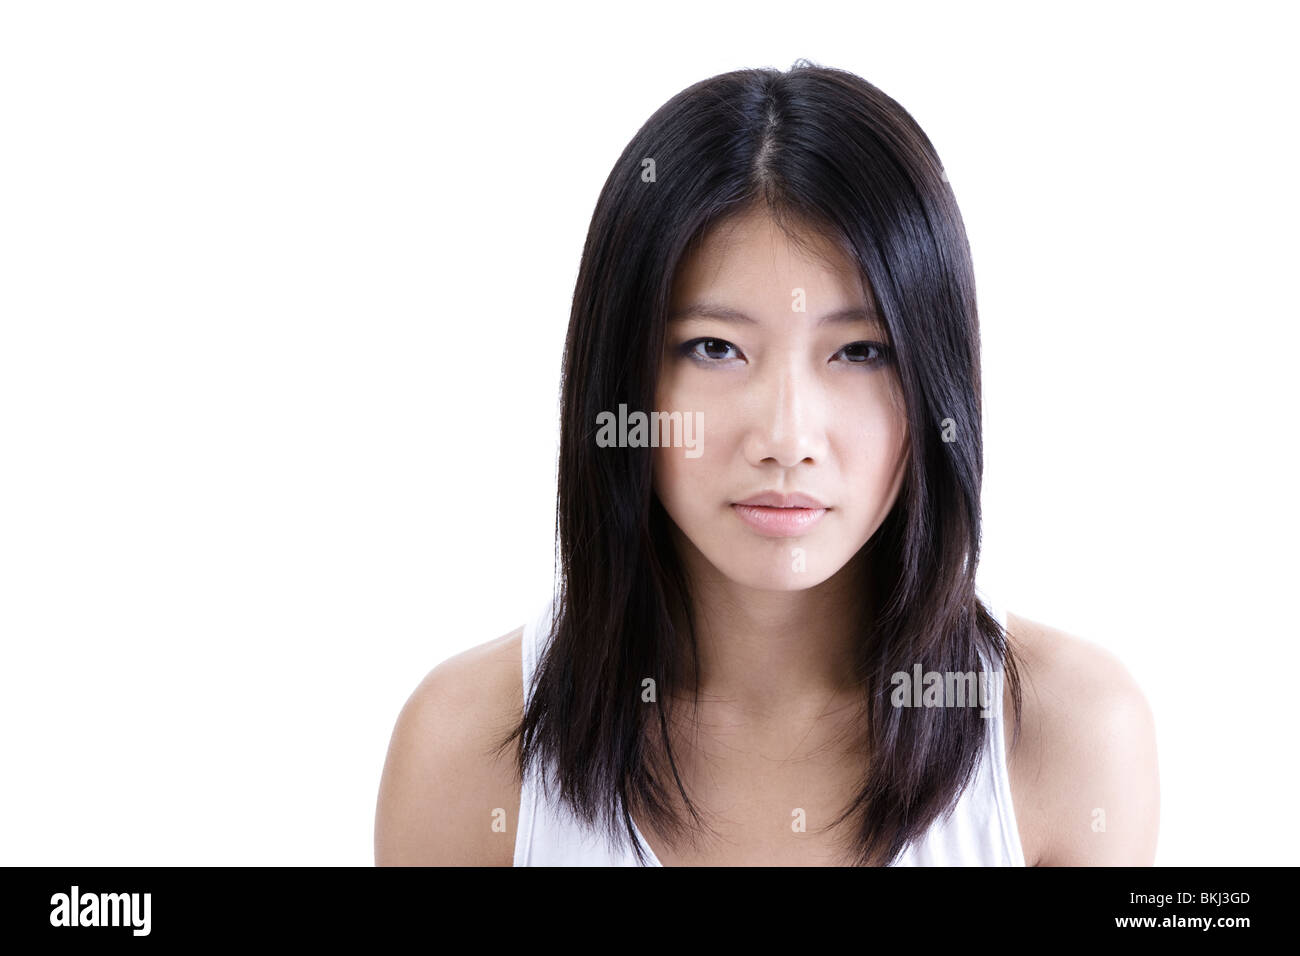 Asian girl portrait Banque D'Images